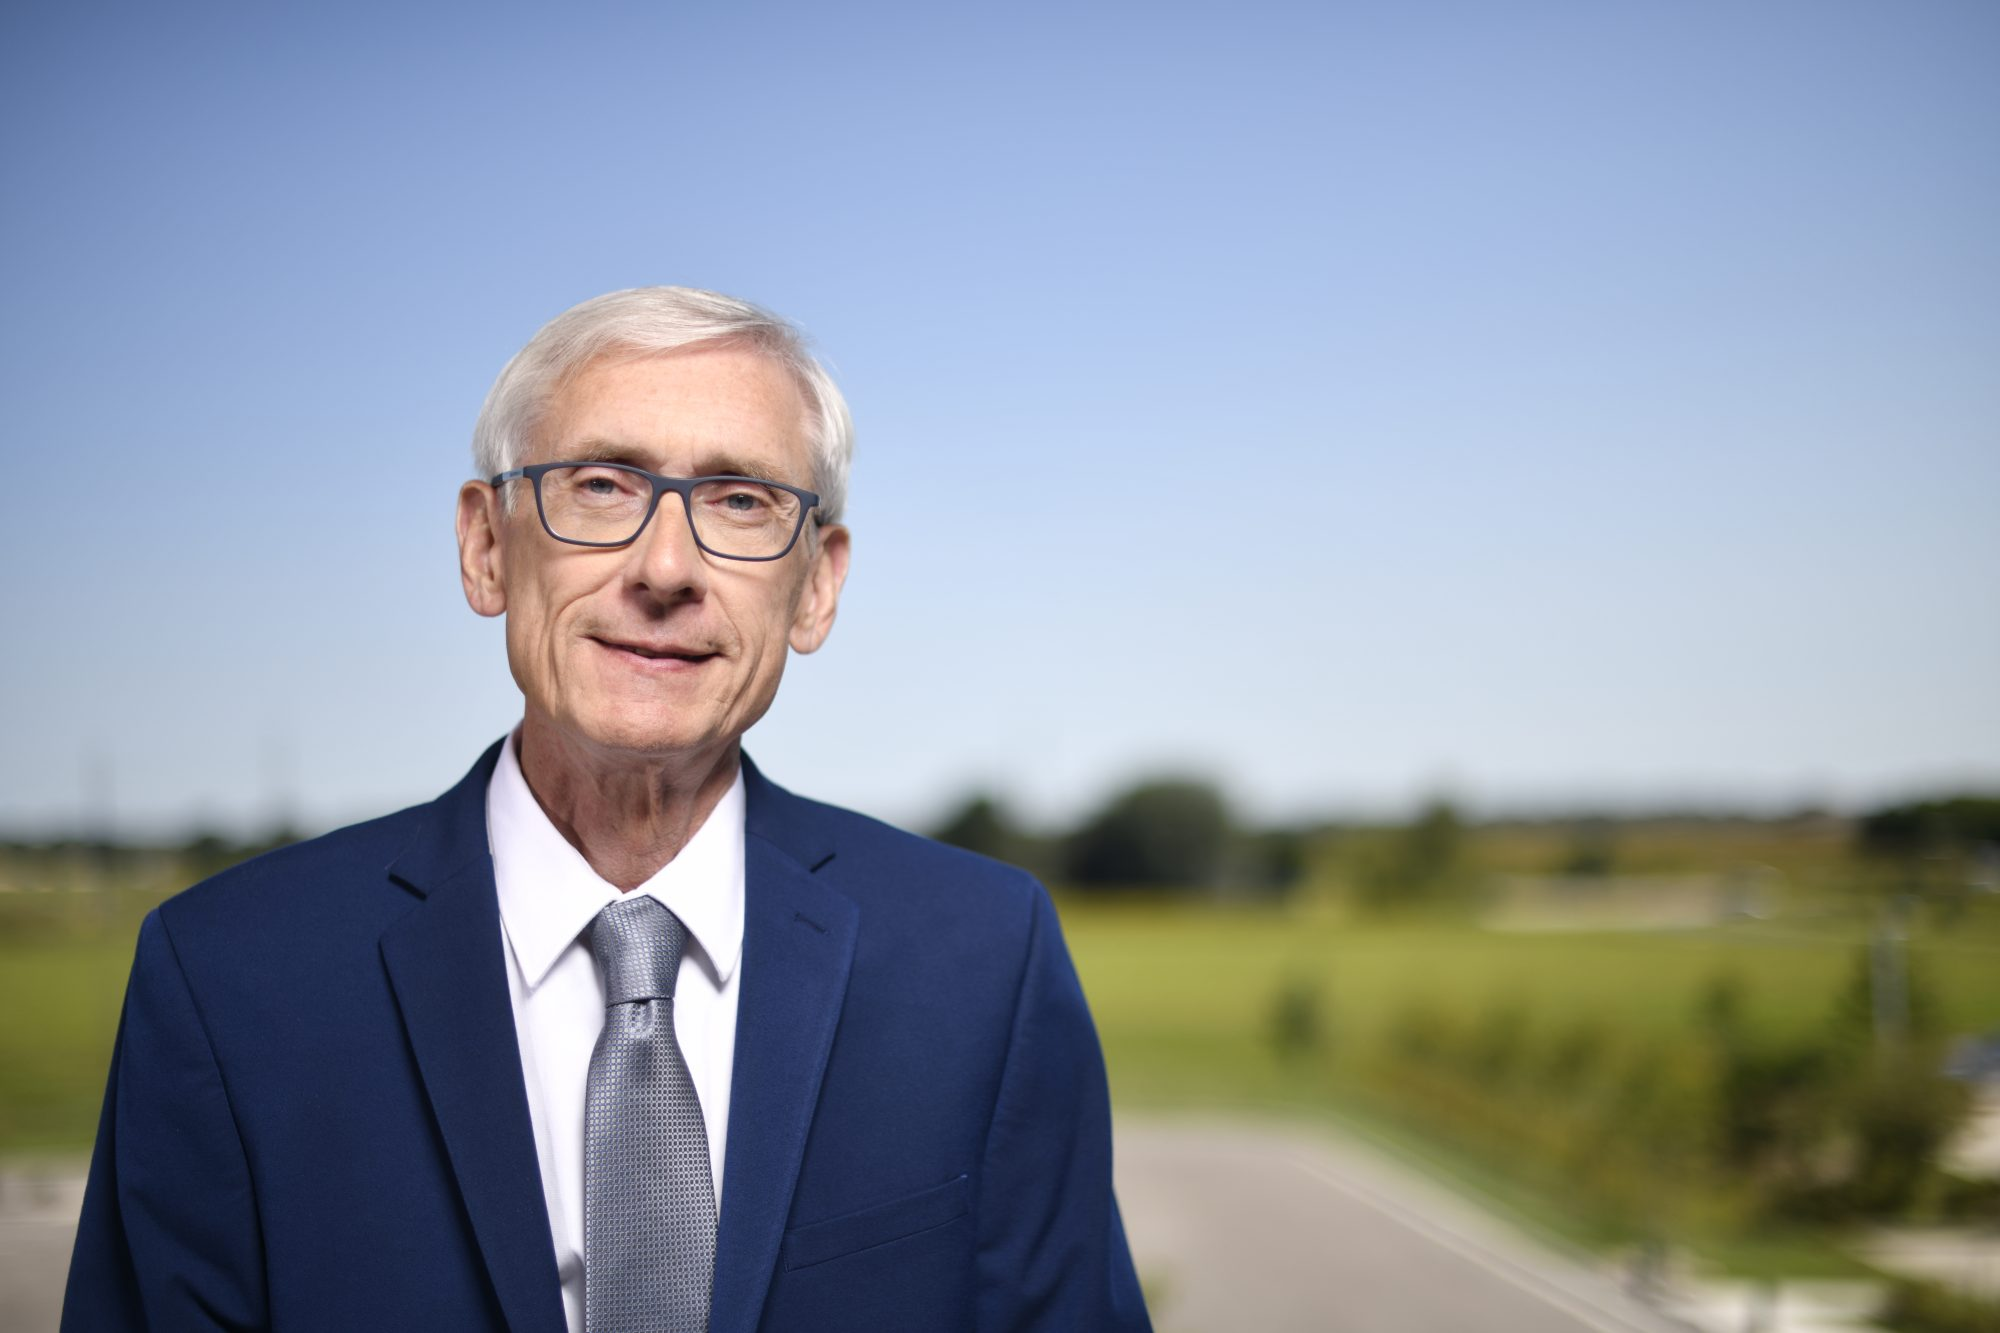 Gov. Evers Authorizes Iowa County to Lower Flags to Half-Staff in Honor of District Attorney Larry E. Nelson